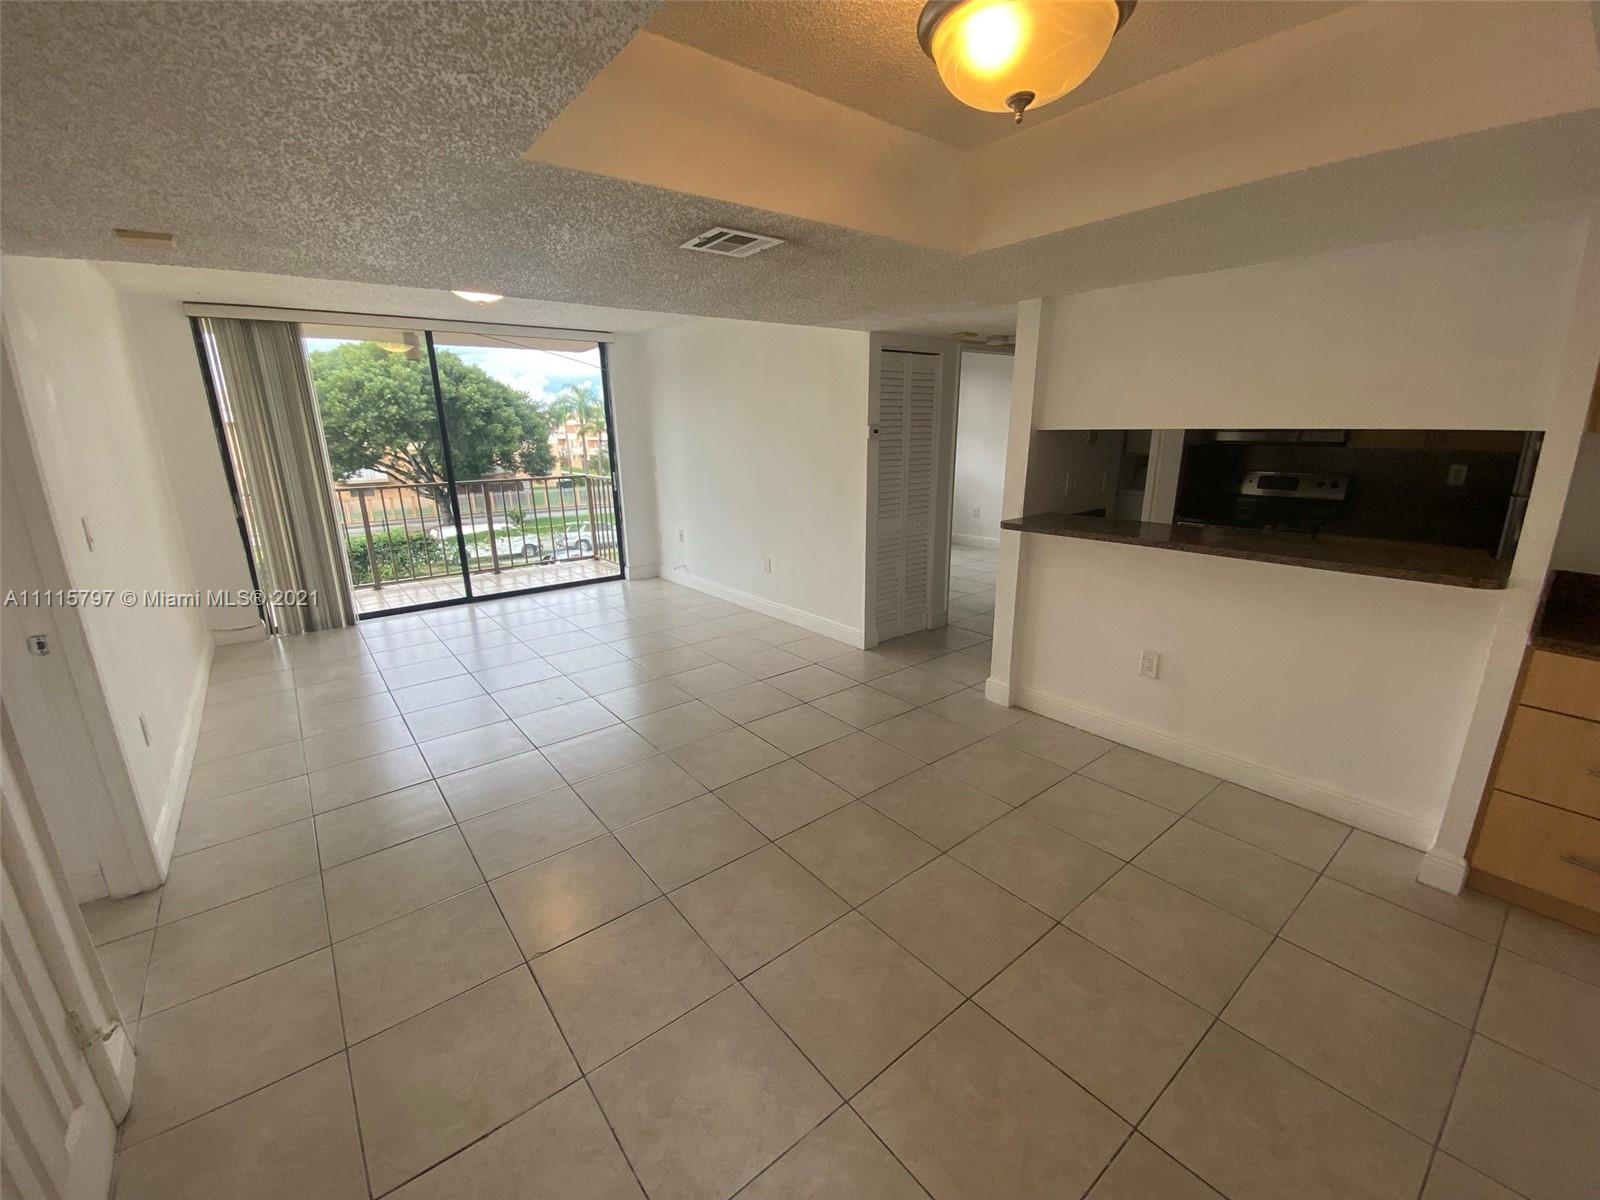 PEPPERMILL KENDALE LKS W Condo,For Rent,PEPPERMILL KENDALE LKS W Brickell,realty,broker,condos near me